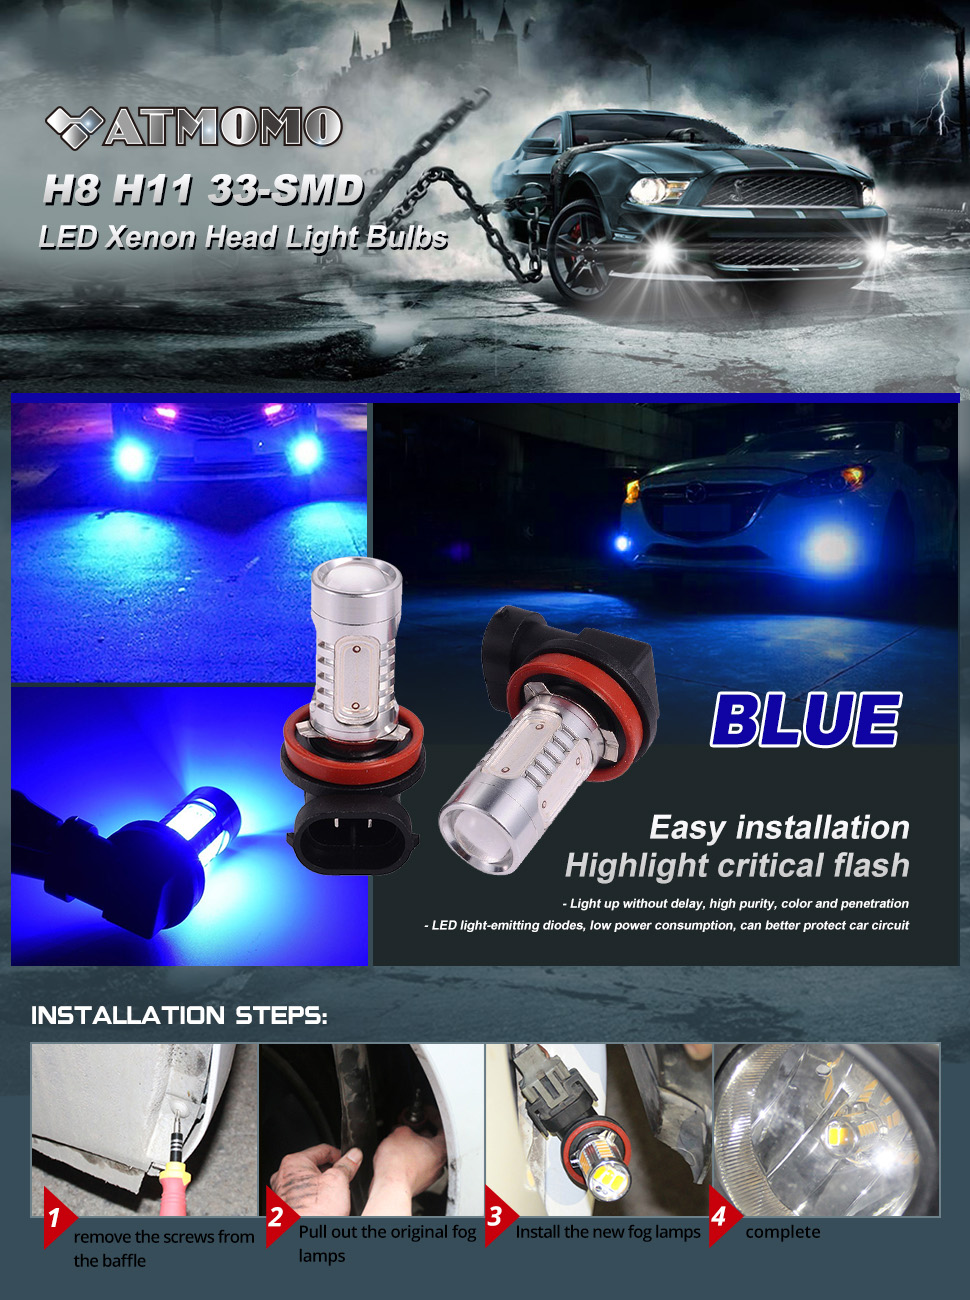 2 Pcs Car H8 H11 33 Smd Led Xenon Head Light Headlight 2005 Dodge Charger Lx 57l V 8 Engine Firing Order And Battery Cable Routing The Product Uses Imported Chips Thin Plate Shaped Design Makes Installation Fit Better More Uniform Illumination This Is Diffusion